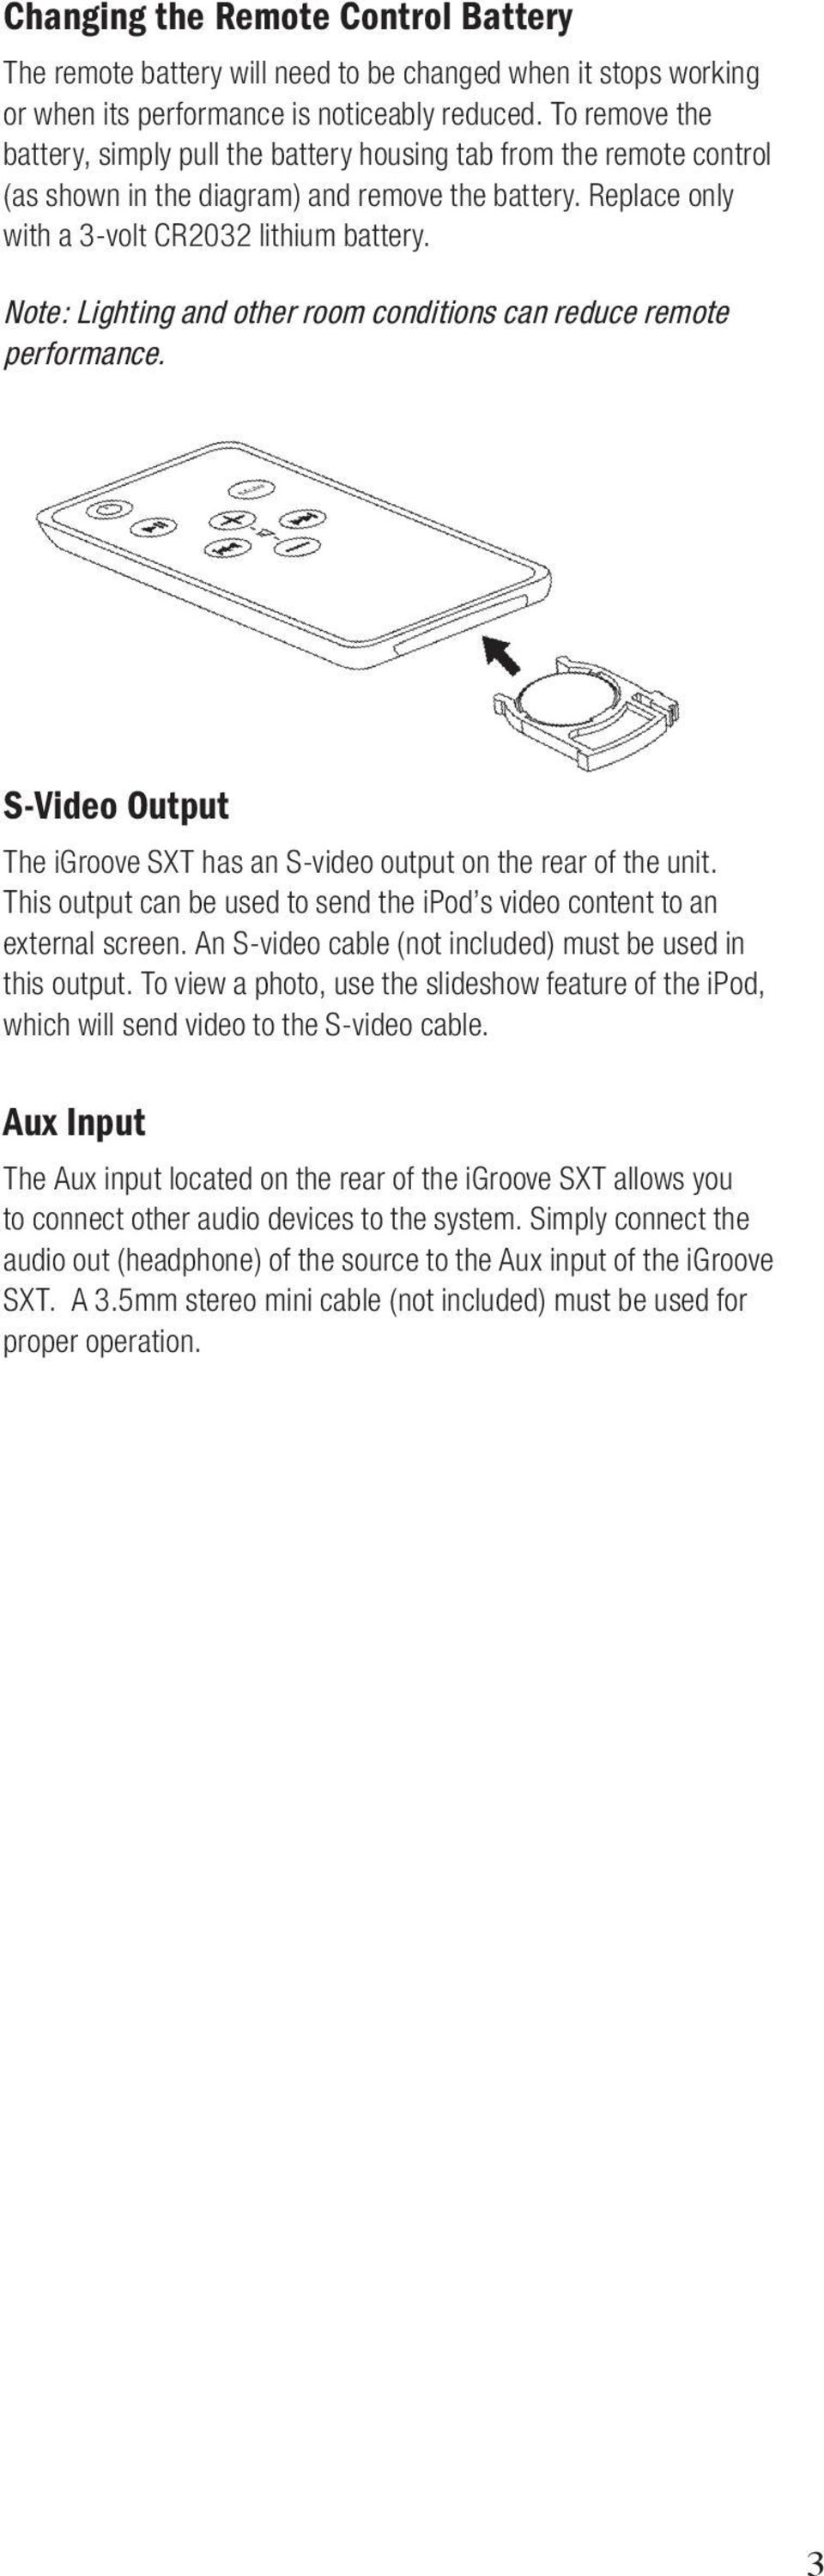 Note: Lighting and other room conditions can reduce remote performance. S-Video Output The igroove SXT has an S-video output on the rear of the unit.